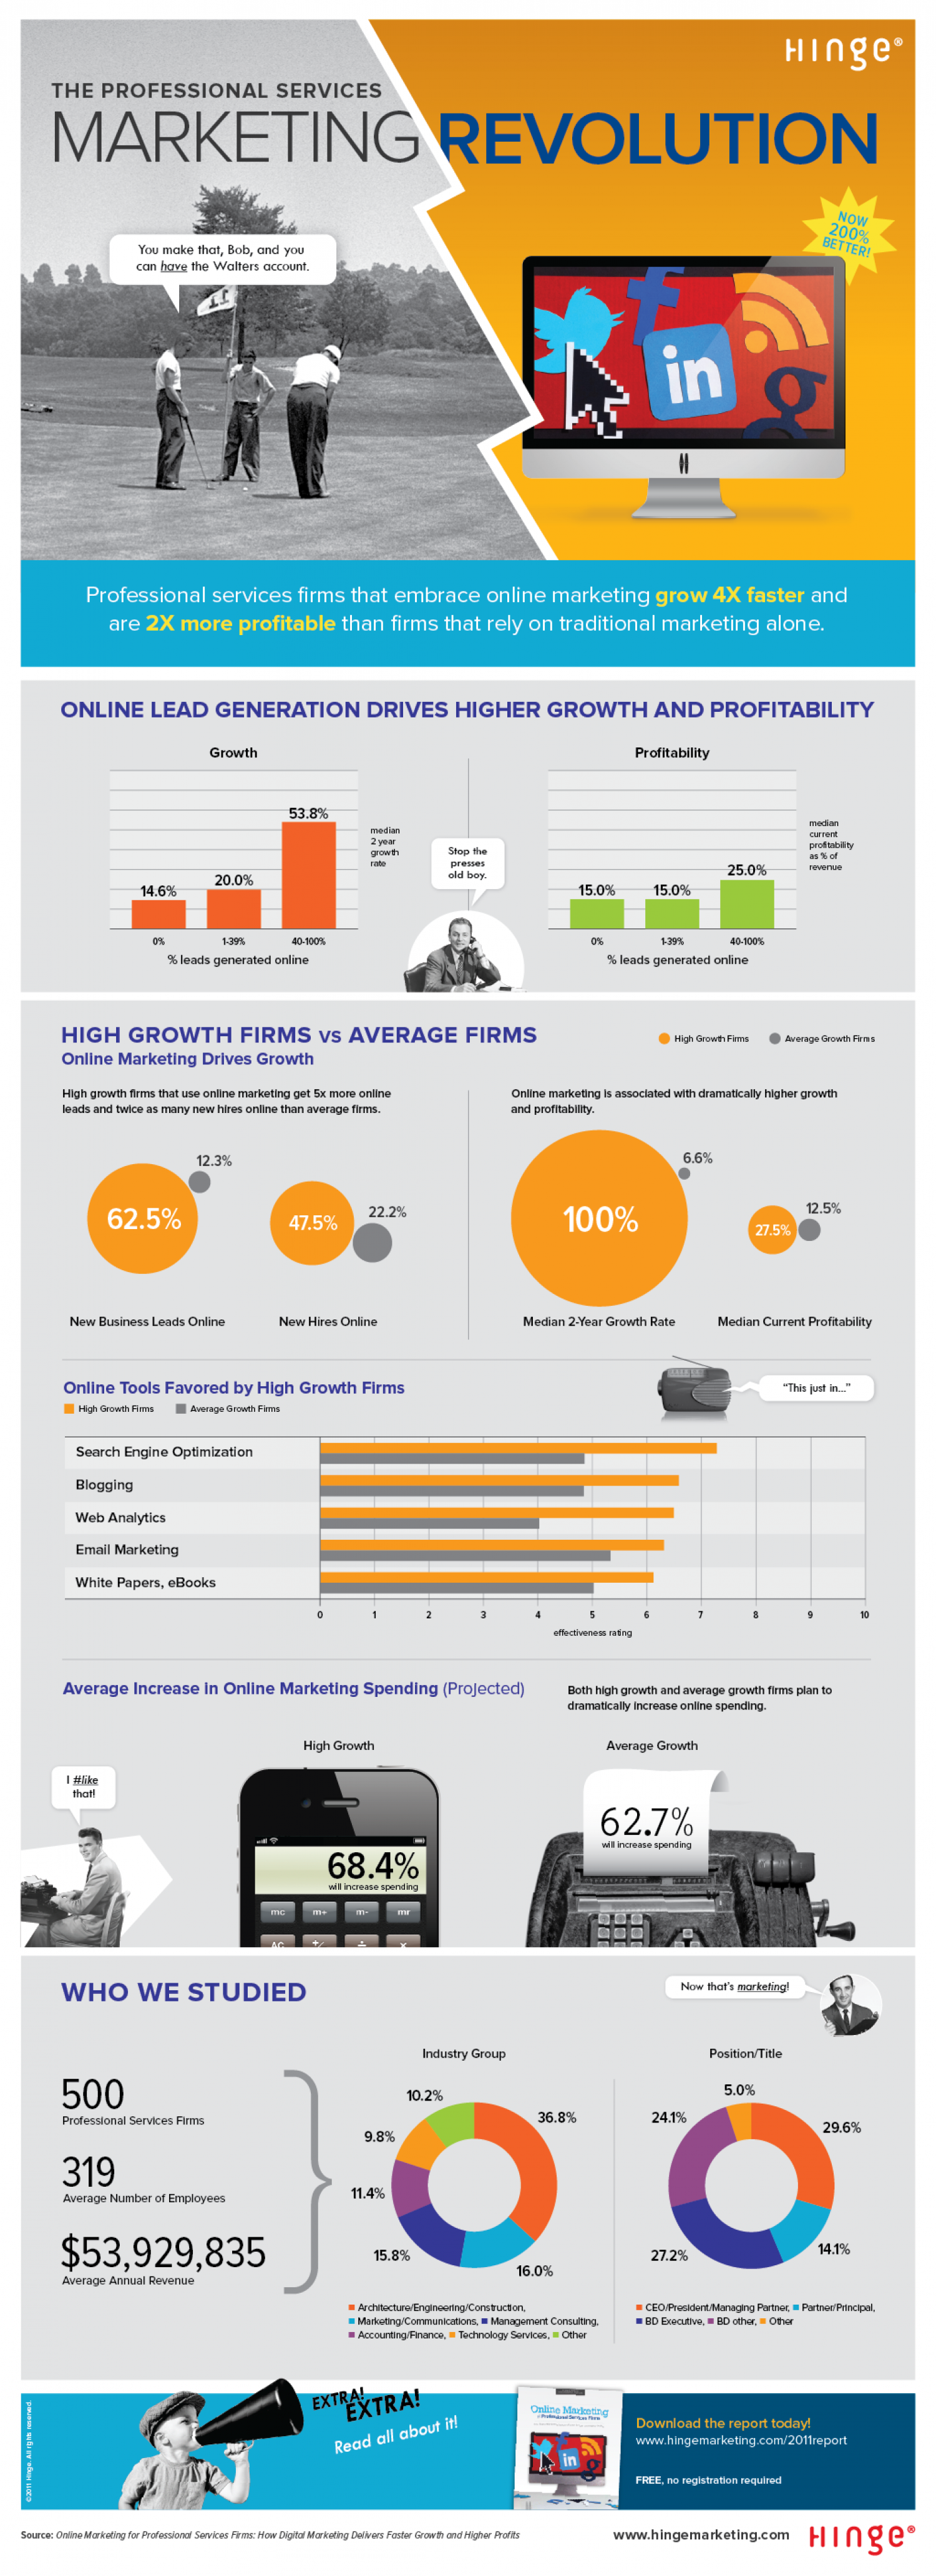 The Professional Services Marketing Revolution Infographic